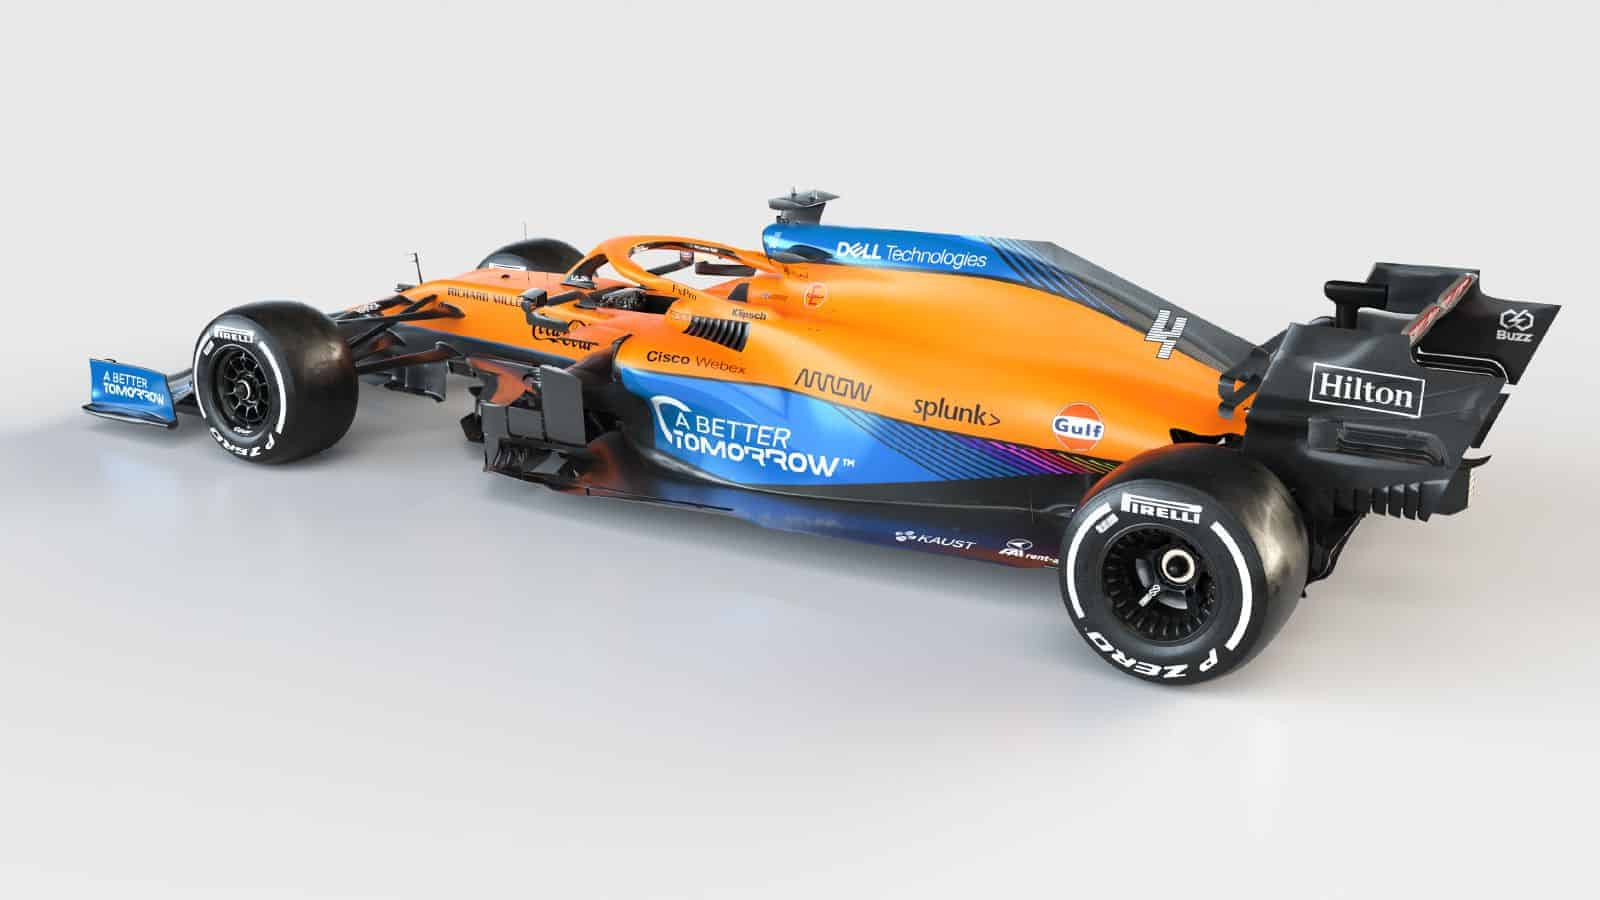 2021 McLaren MCL35M Mercedes launch studio rear left side view Photo McLaren